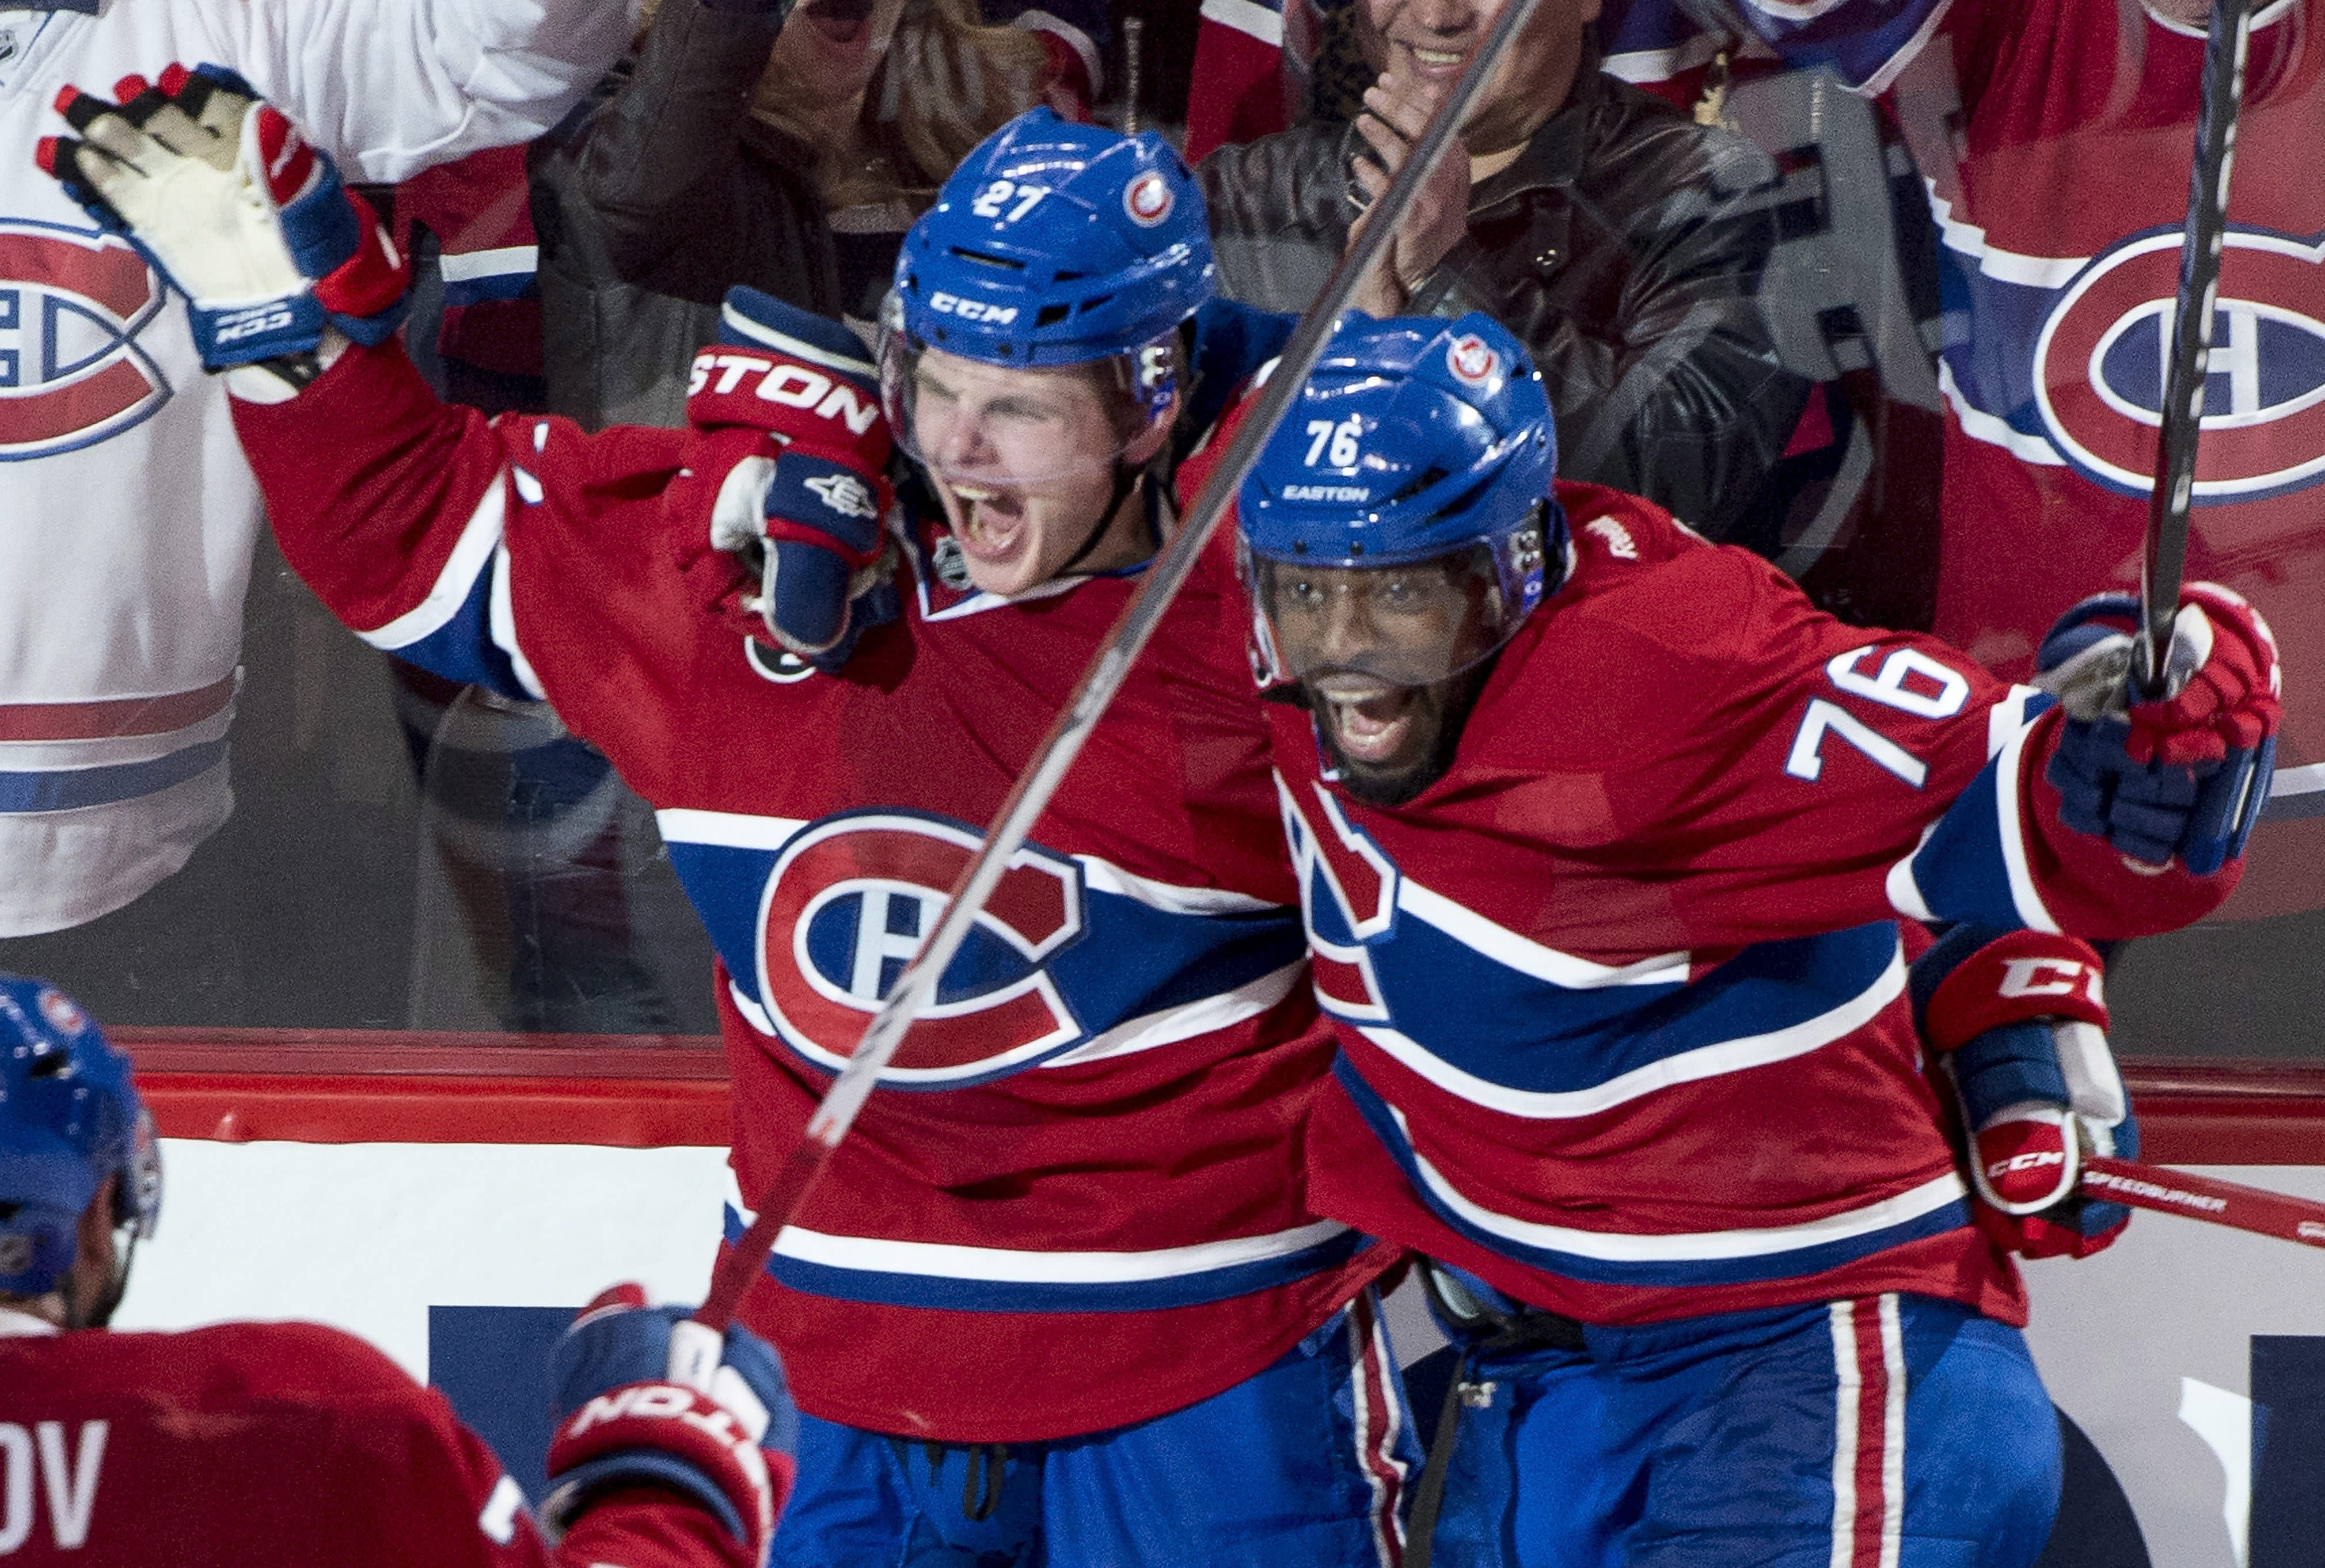 Habs' PK Subban steps up in Game 2 in front of Elise Beliveau: 'I want to be better for her'